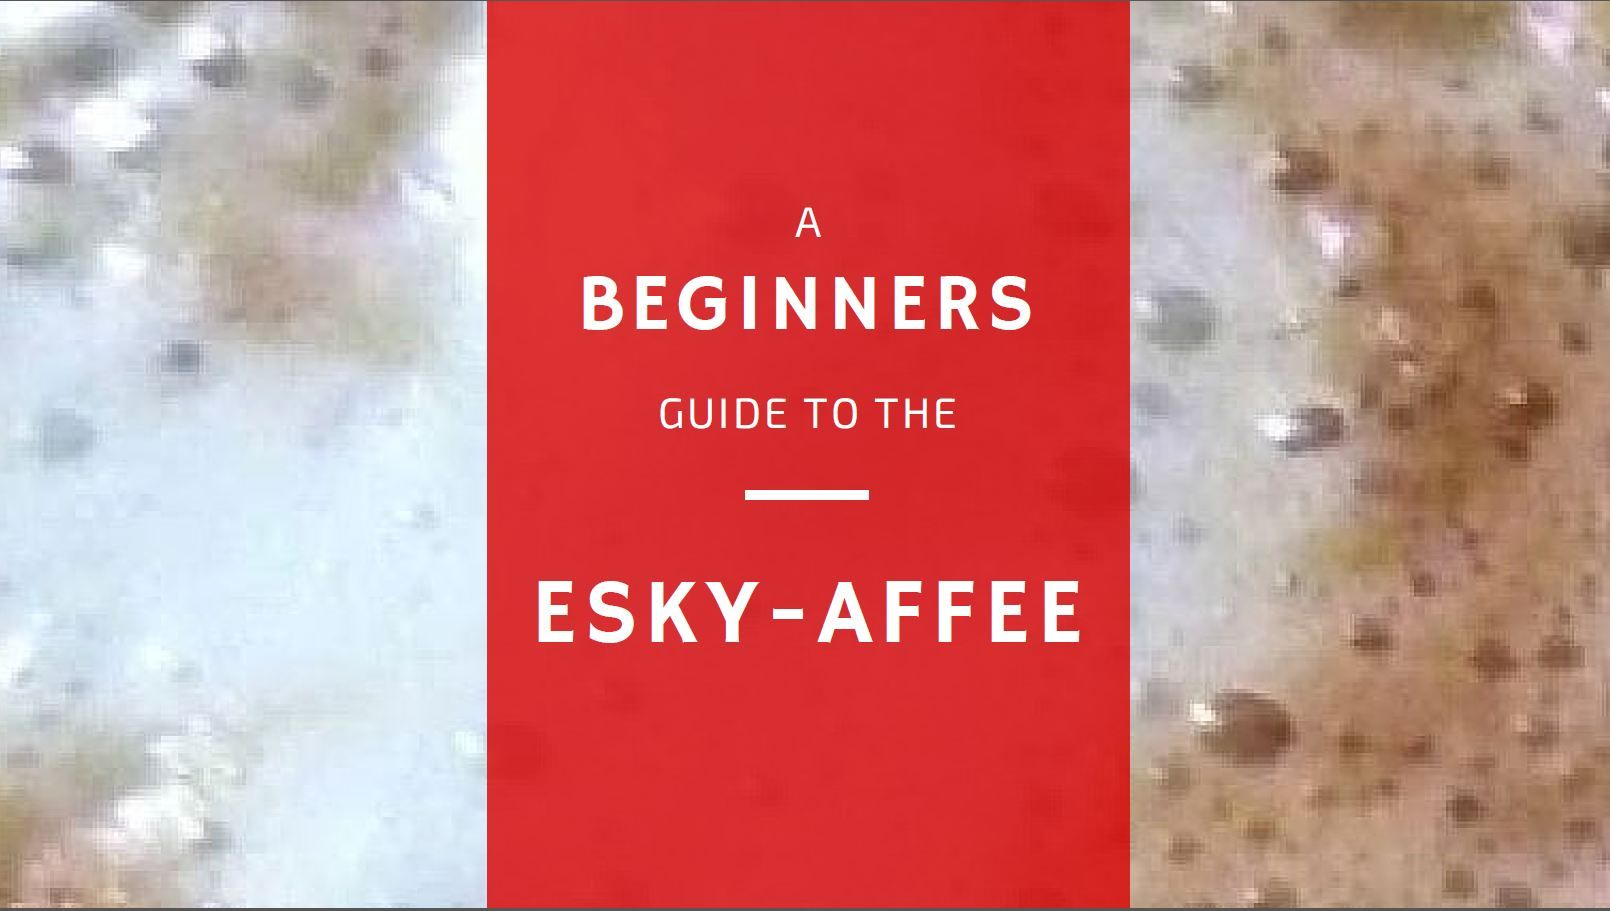 Esky-Affee. An Aussie take on a popular German coffee.